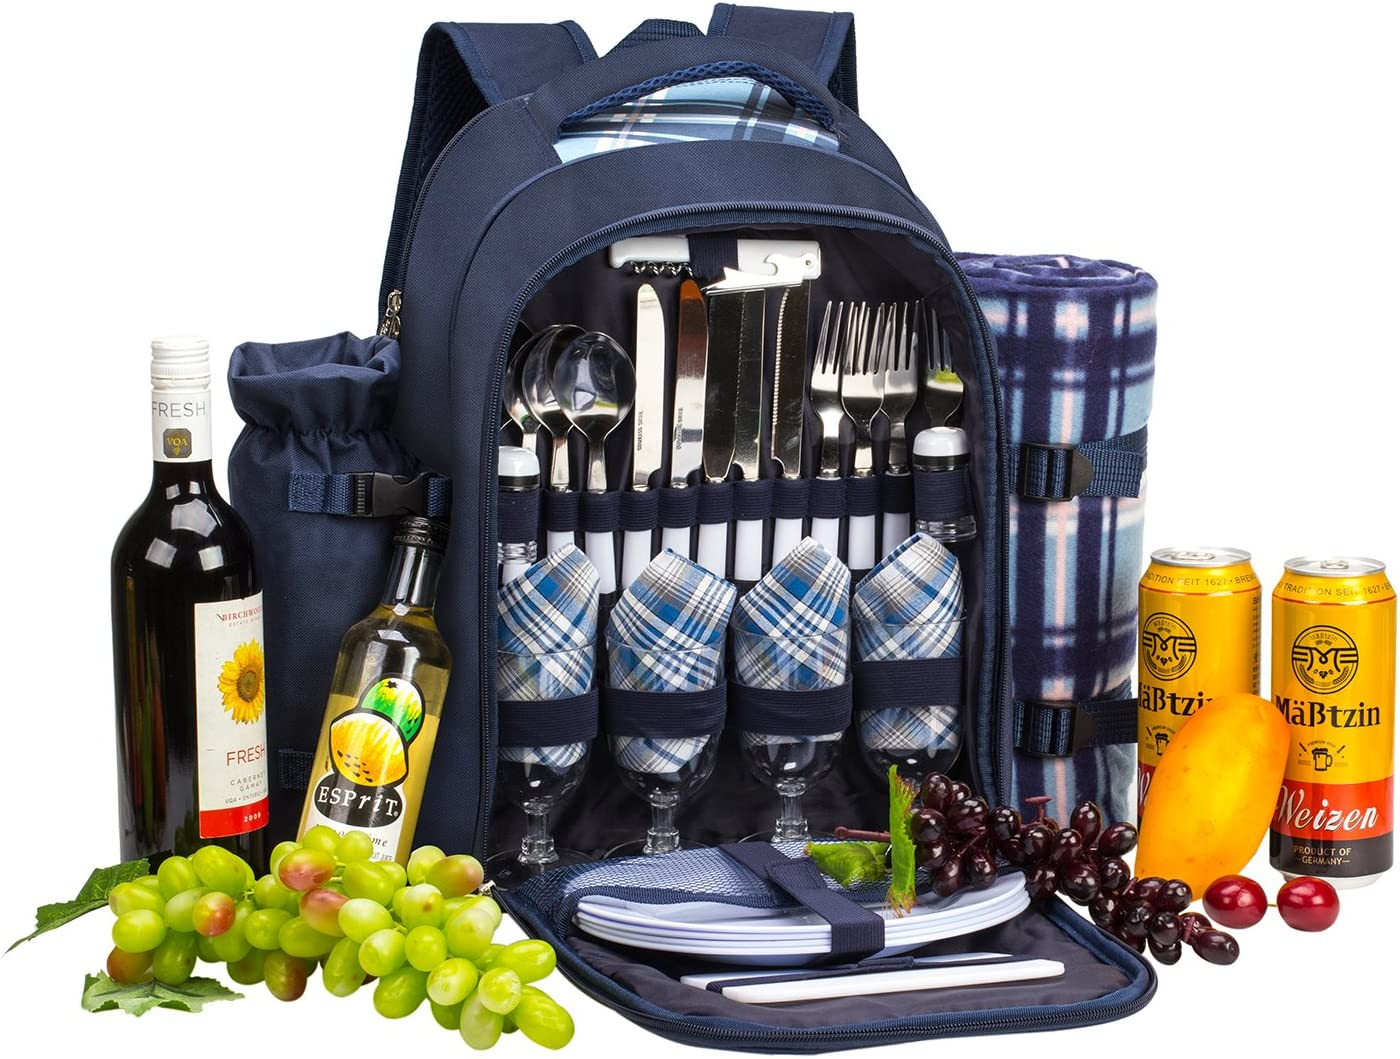 Picnic Blanket and Picnic Cutlery//Dinning Set Includes Removable Bottle Holder and Wine Carrier apollo walker 4 Person Picnic Backpack with Insulated Cooler Compartment